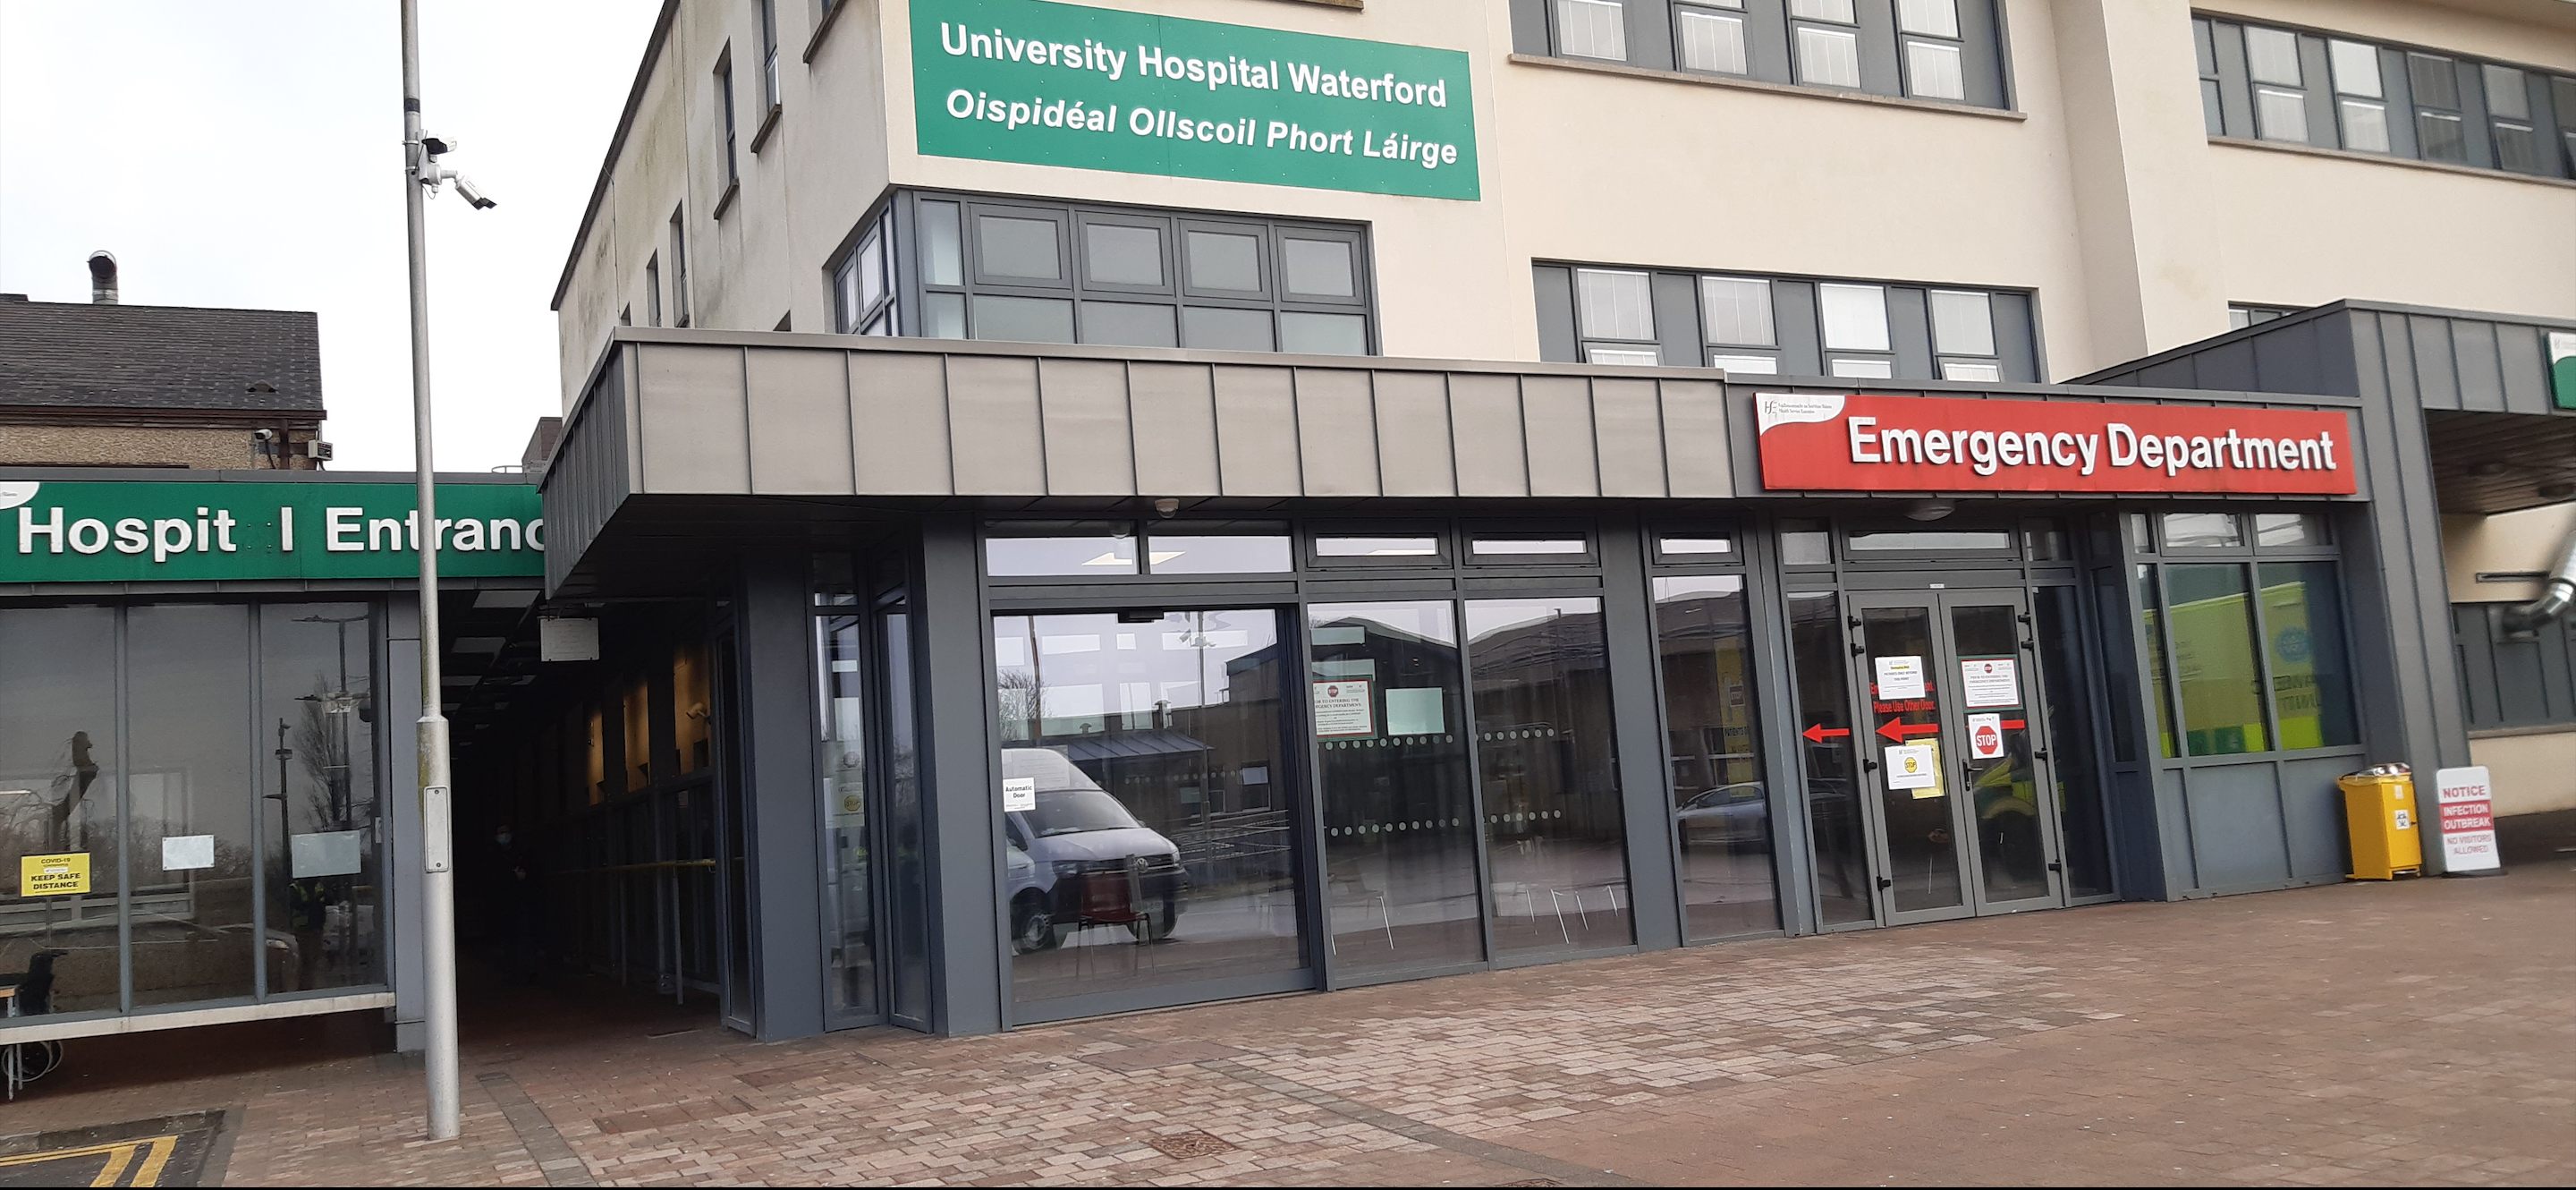 Electrical Contract Competed For A&E Entrance UHW